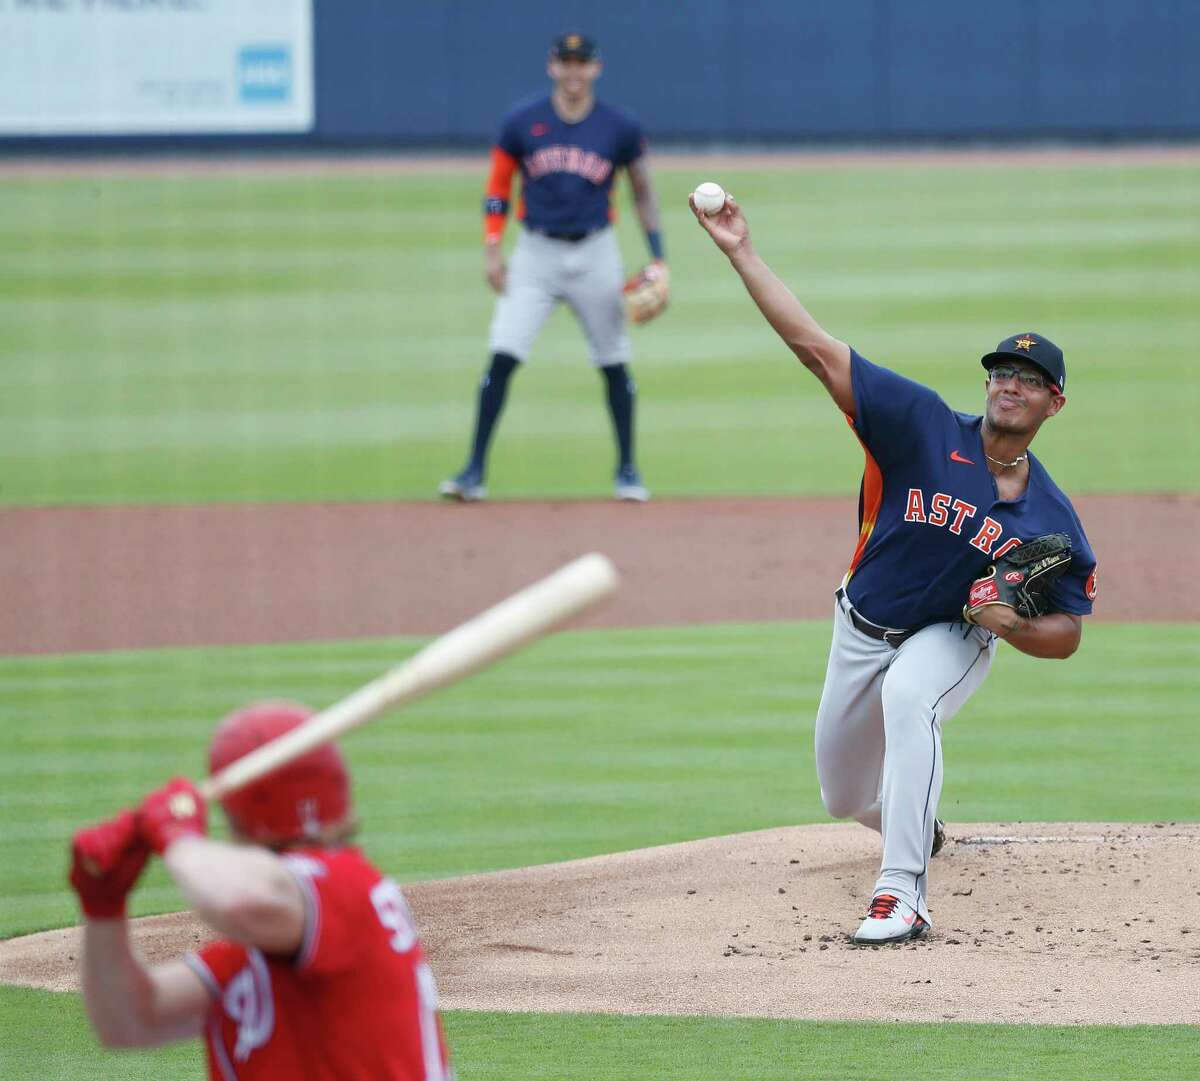 Houston Astros starting pitcher Nivaldo Rodriguez (68) faces Washington Nationals Andrew Stevenson (17) during the first inning of an MLB spring training game at Ballpark of the Palm Beaches in West Palm Beach, Florida, Monday, March 1, 2021.